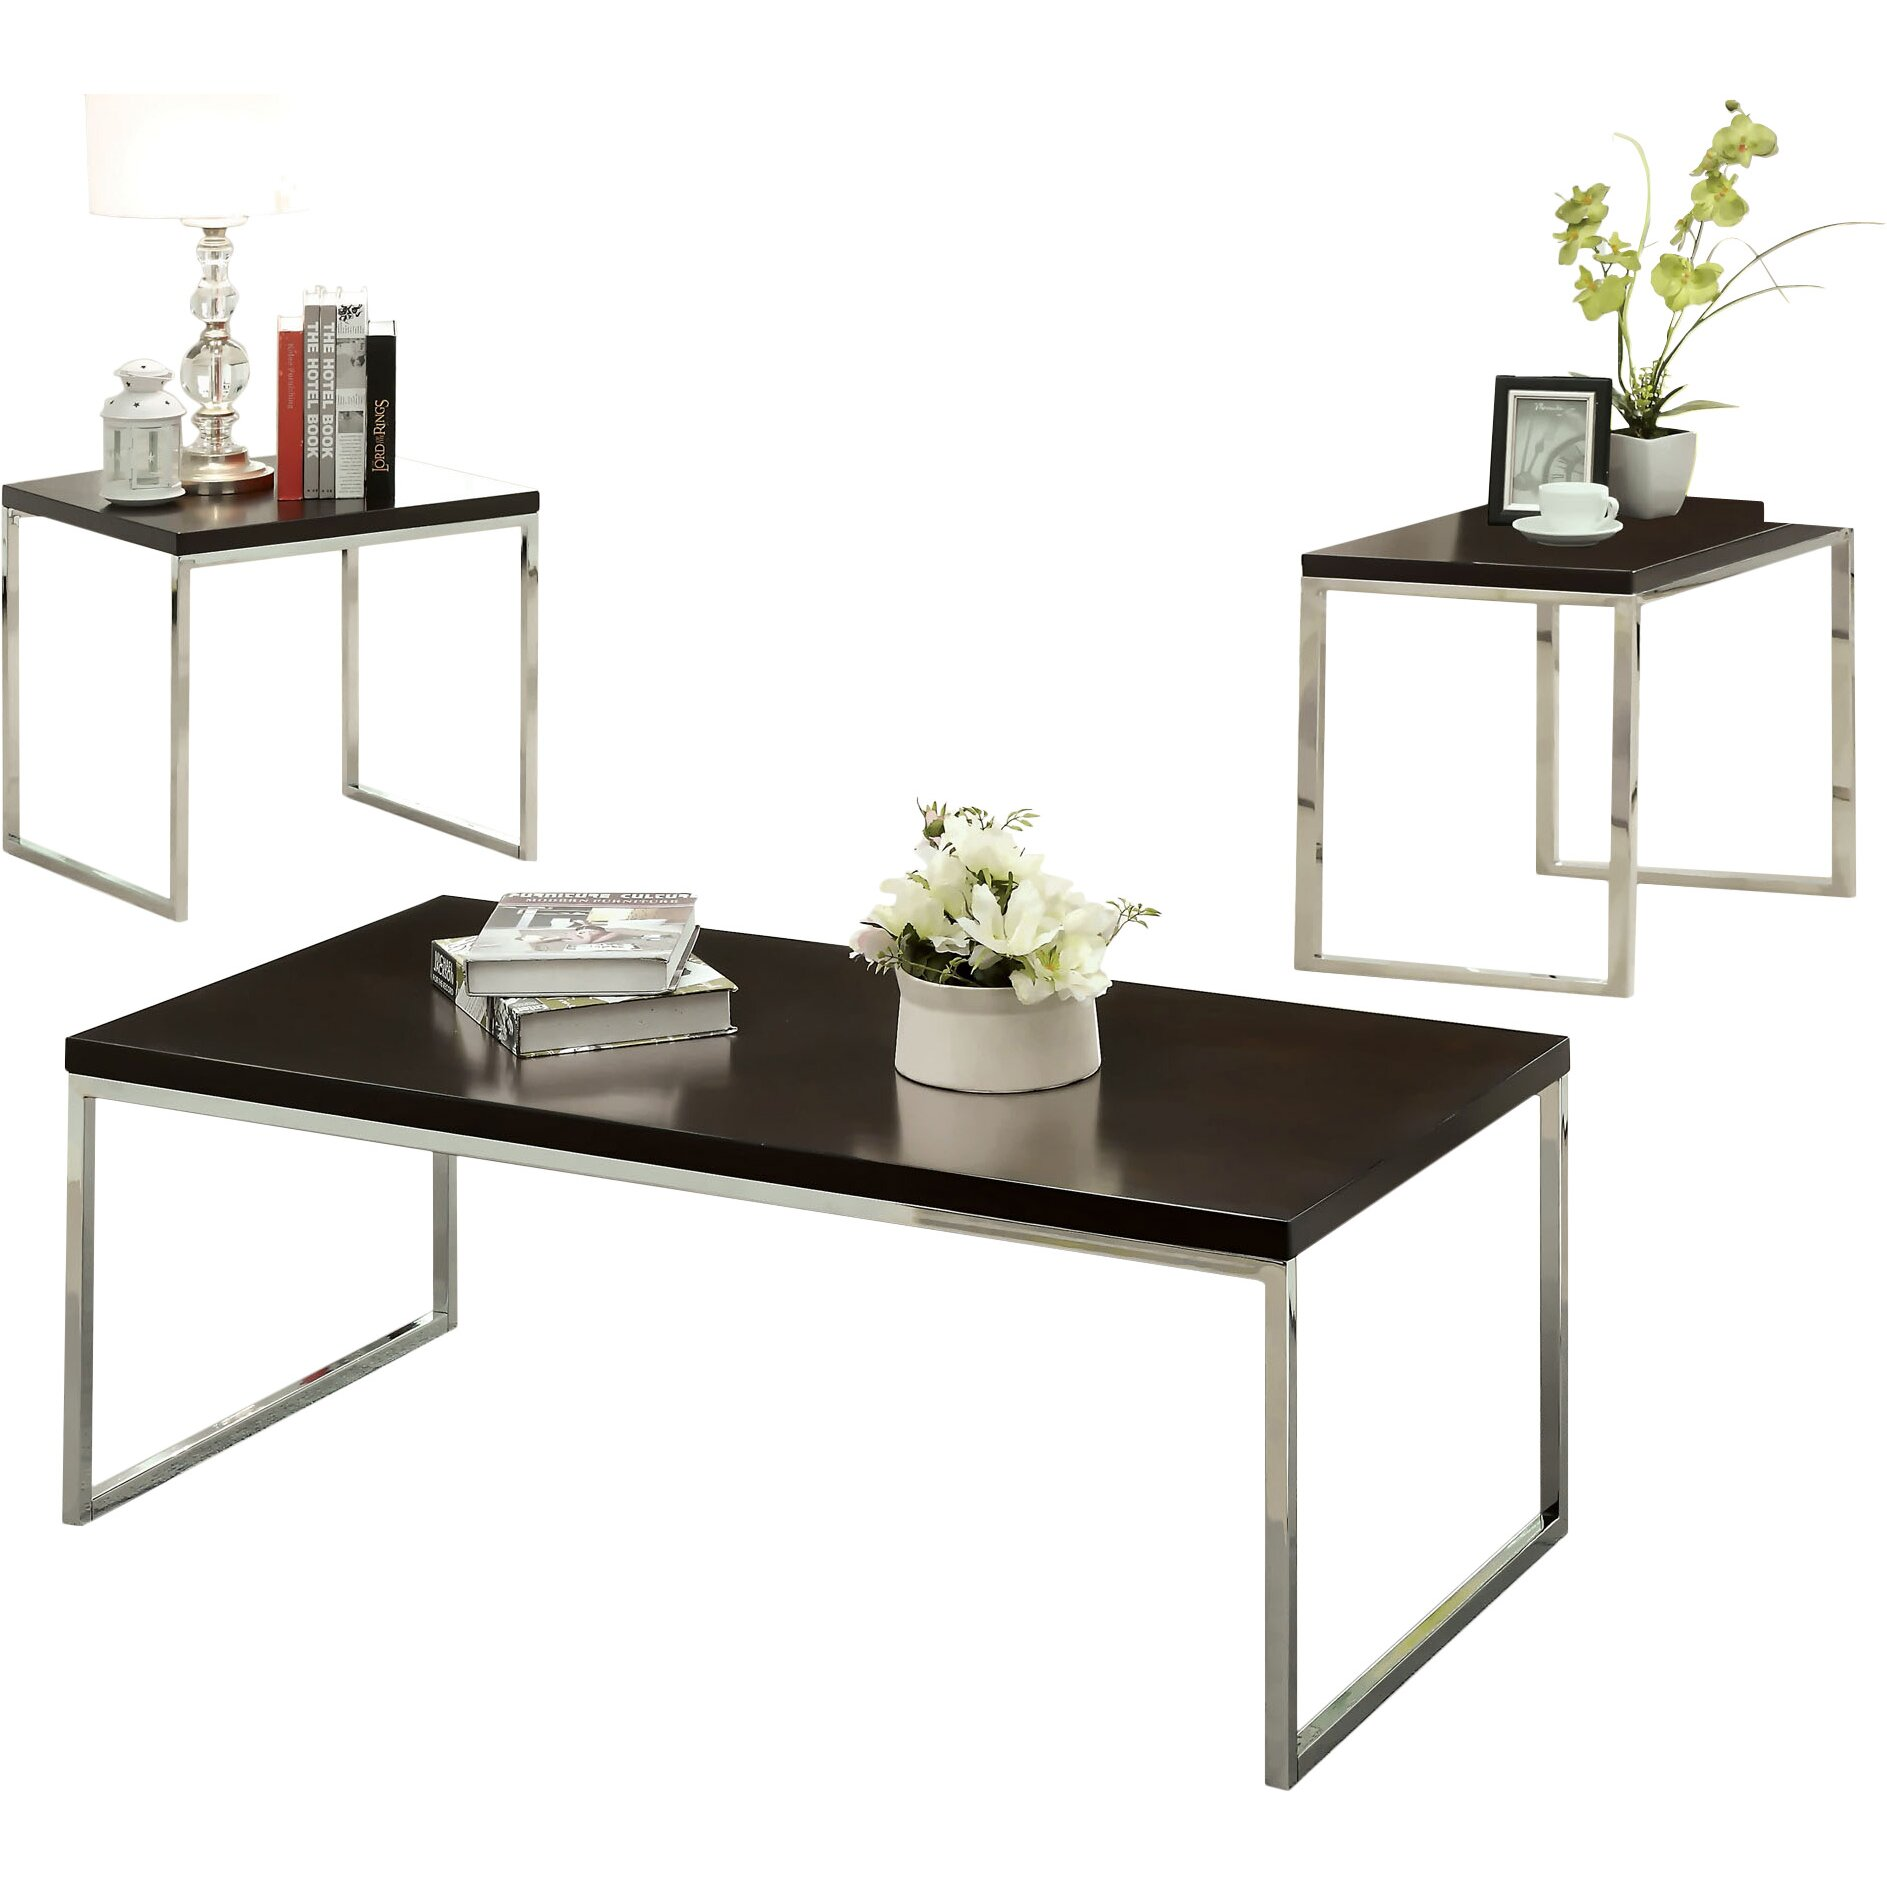 hokku designs howie retro 3 piece coffee table set reviews wayfair. Black Bedroom Furniture Sets. Home Design Ideas